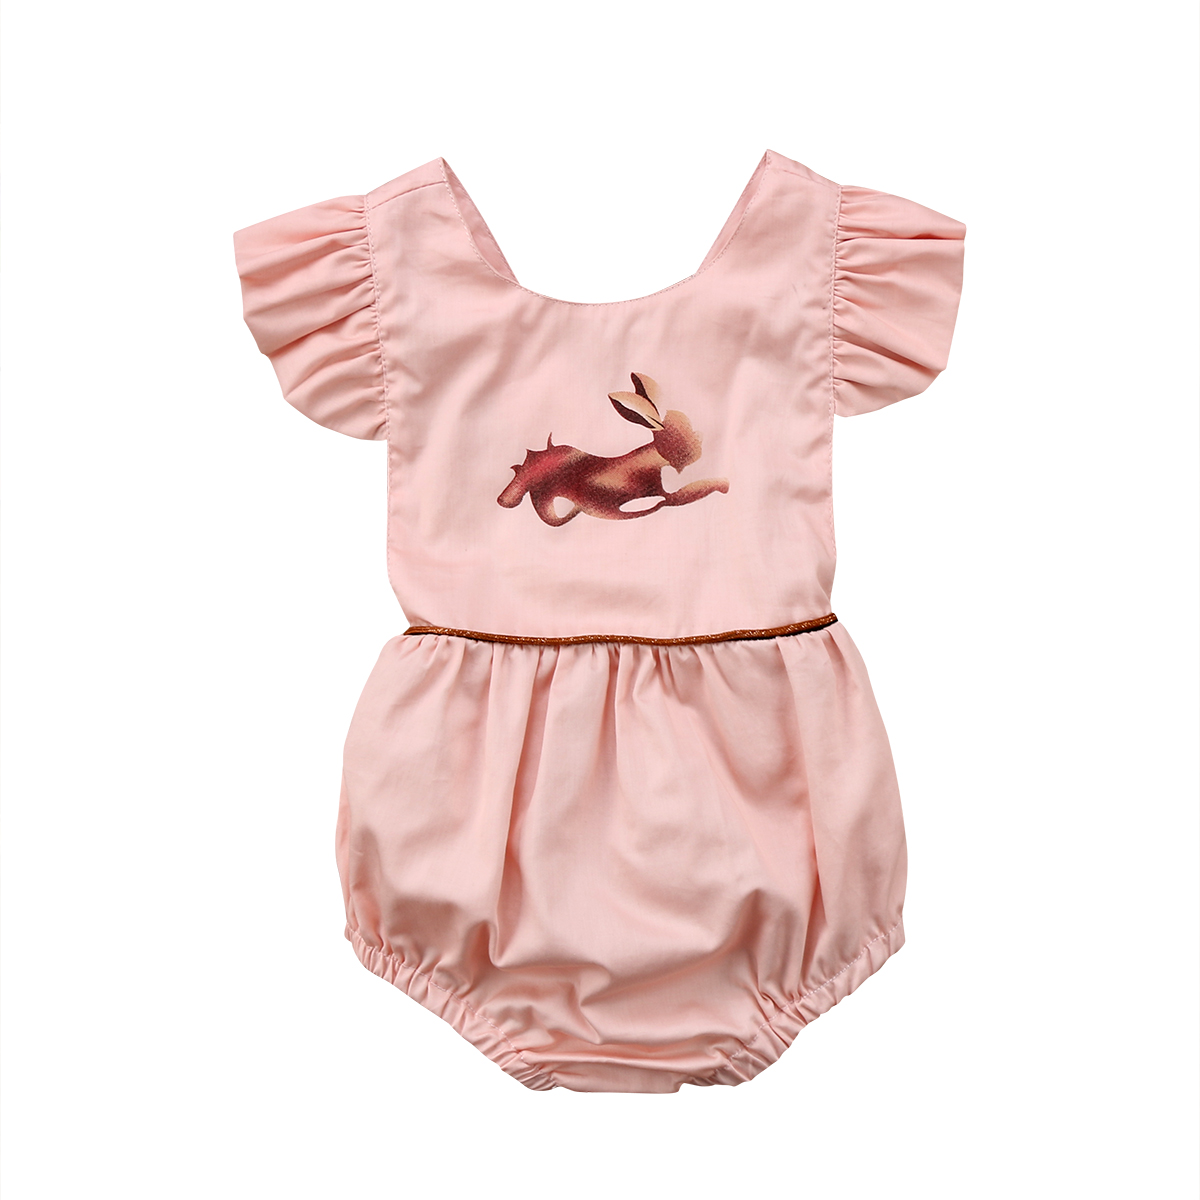 Toddler Kid Newborn Baby Girl Linen Bunny Romper Bodysuit Summer Outfit Clothes